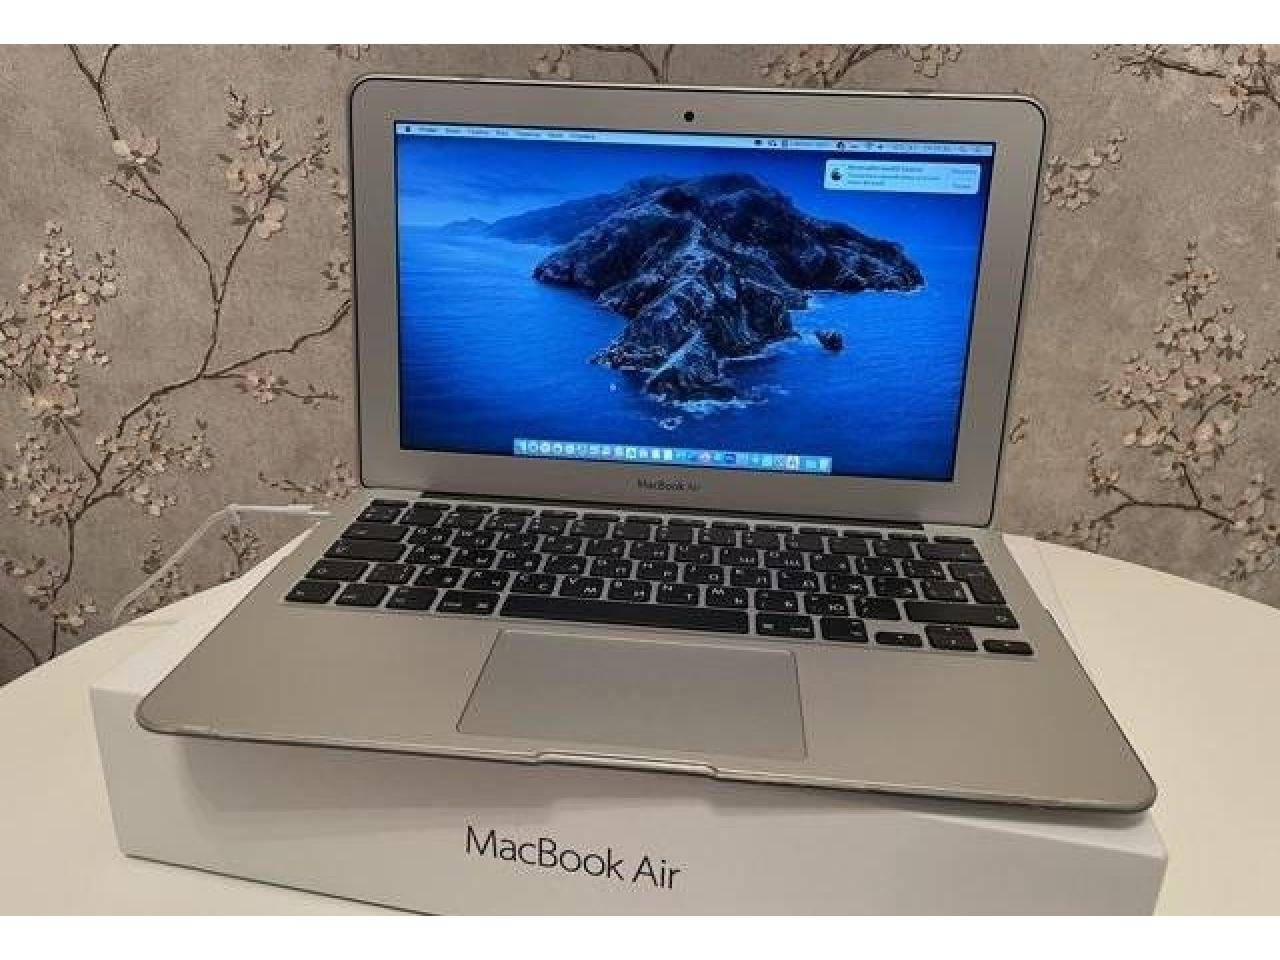 Apple MacBook Air 11, Ssd 128 gb, диагональ 11.6 - 1/5